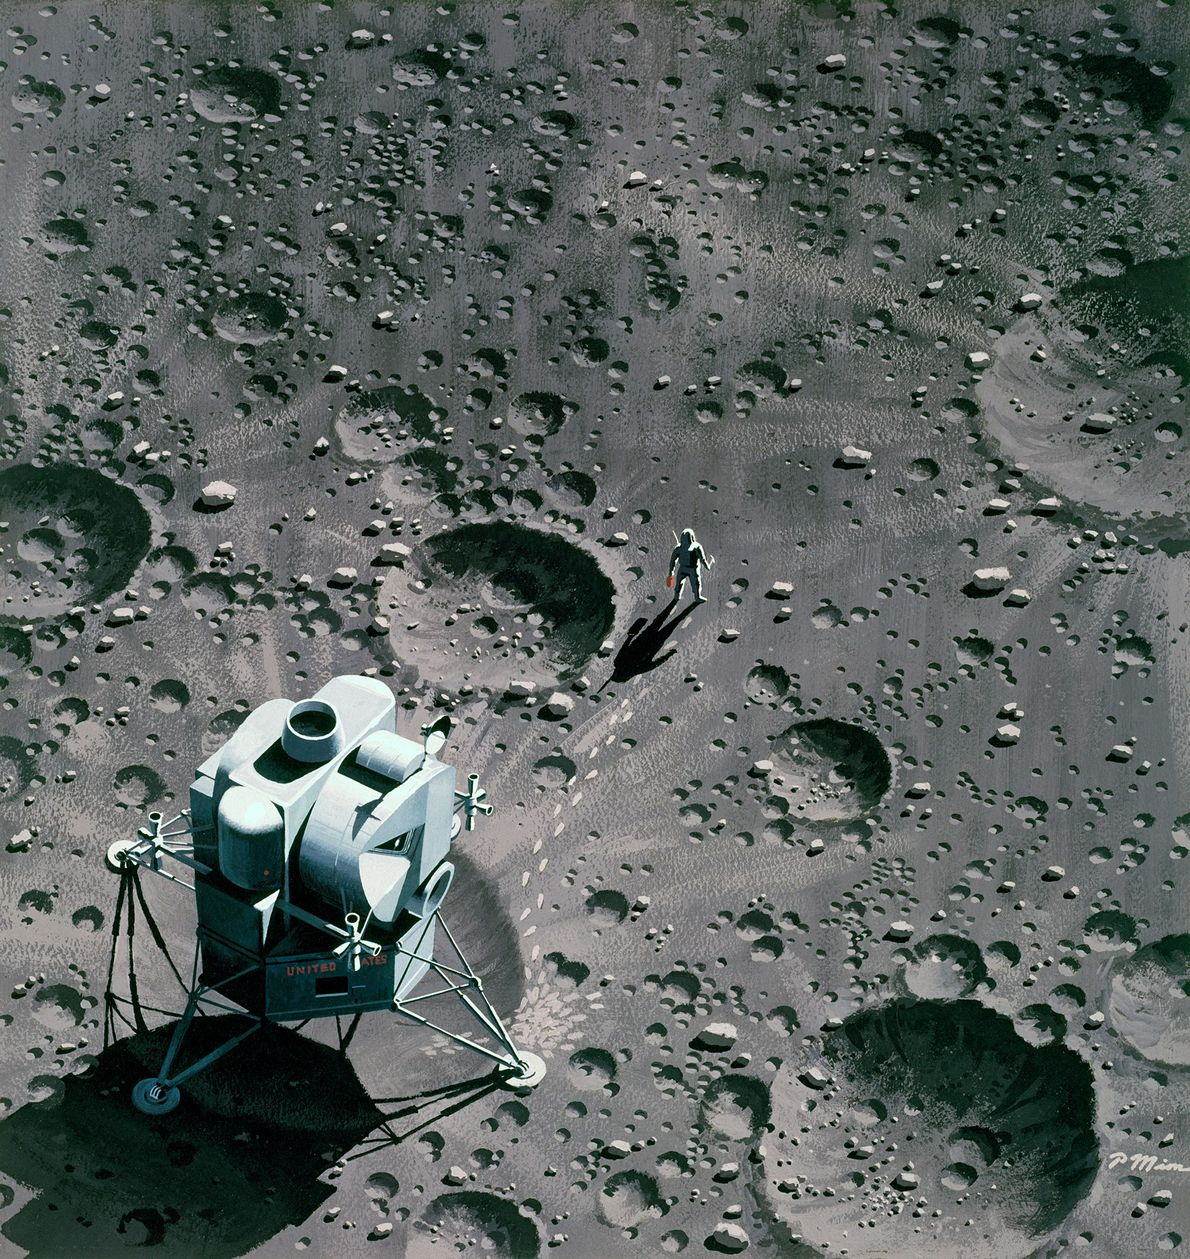 Footprints On The Moon, March 1964